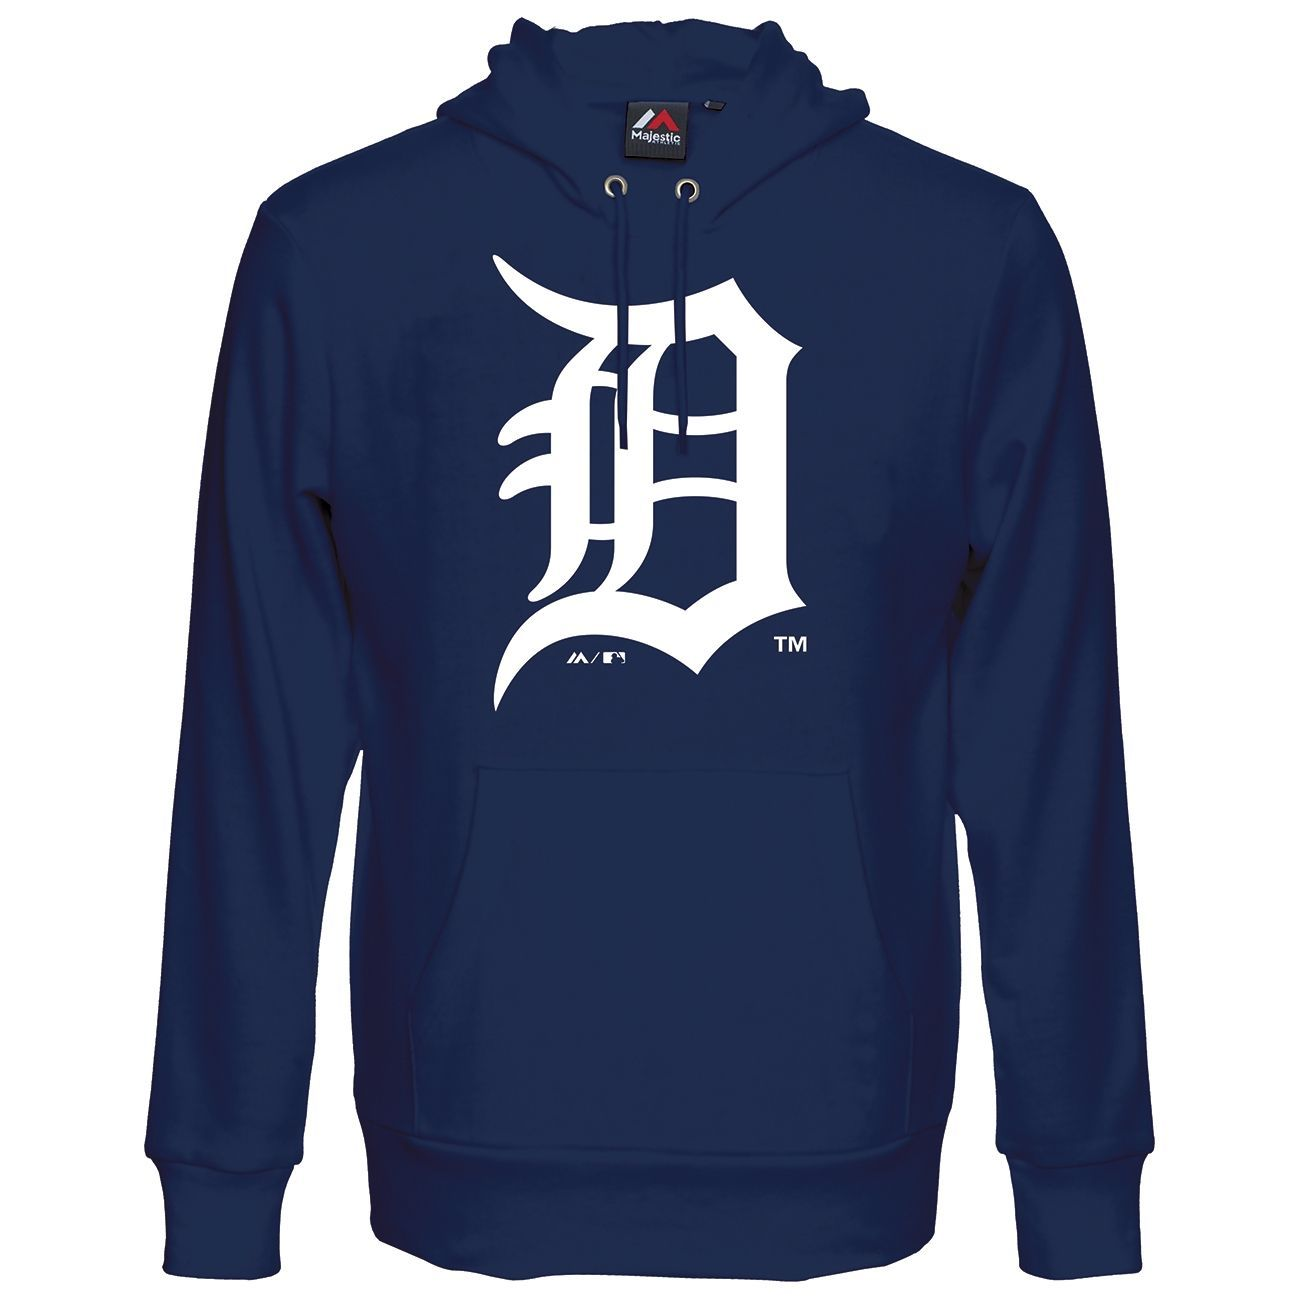 Neu Baseball & Softball Immer Detroit Tigers Herren L L Majestic Shirt